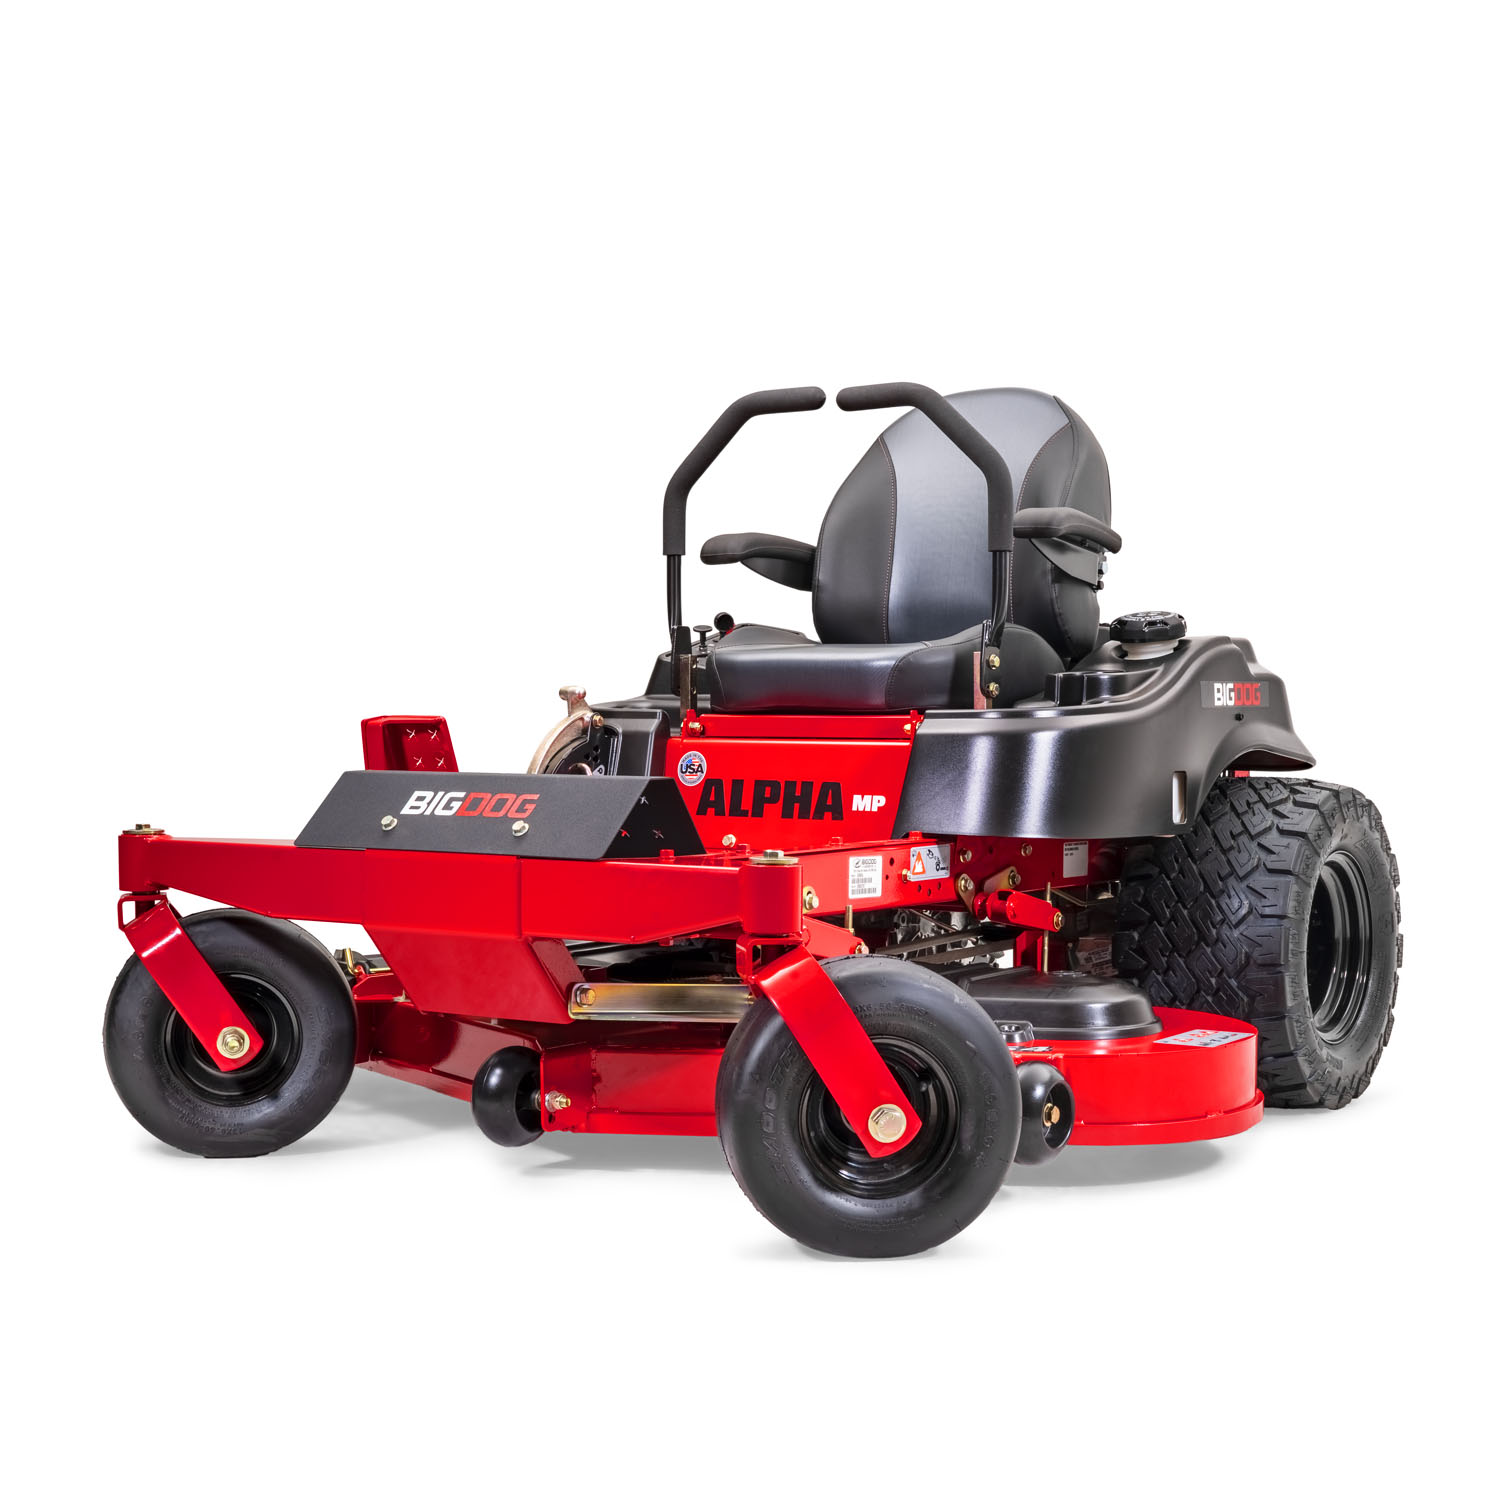 2020 Big Dog Alpha MP zero turn radius mower